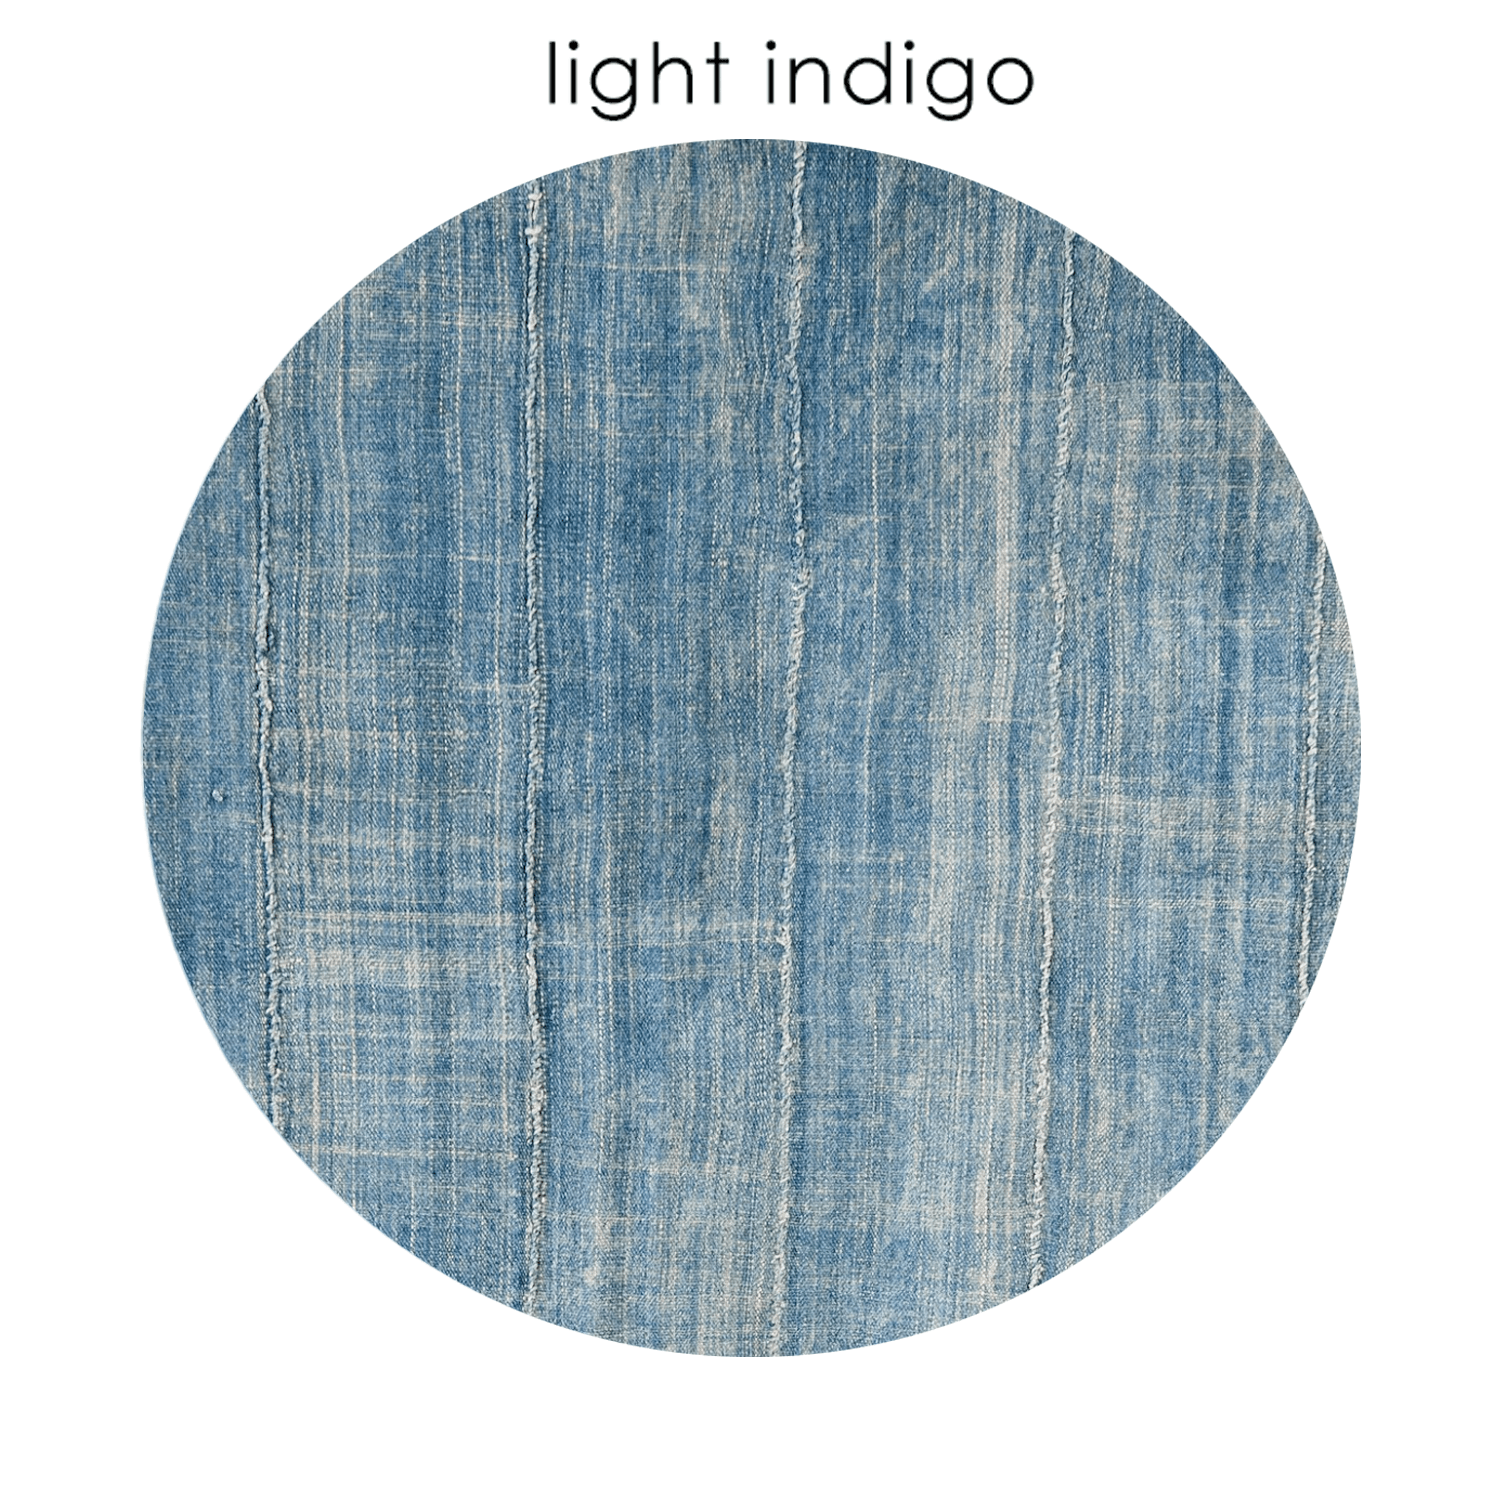 Super Lightweight Round Ottoman Vintage Indigo Caraccident5 Cool Chair Designs And Ideas Caraccident5Info